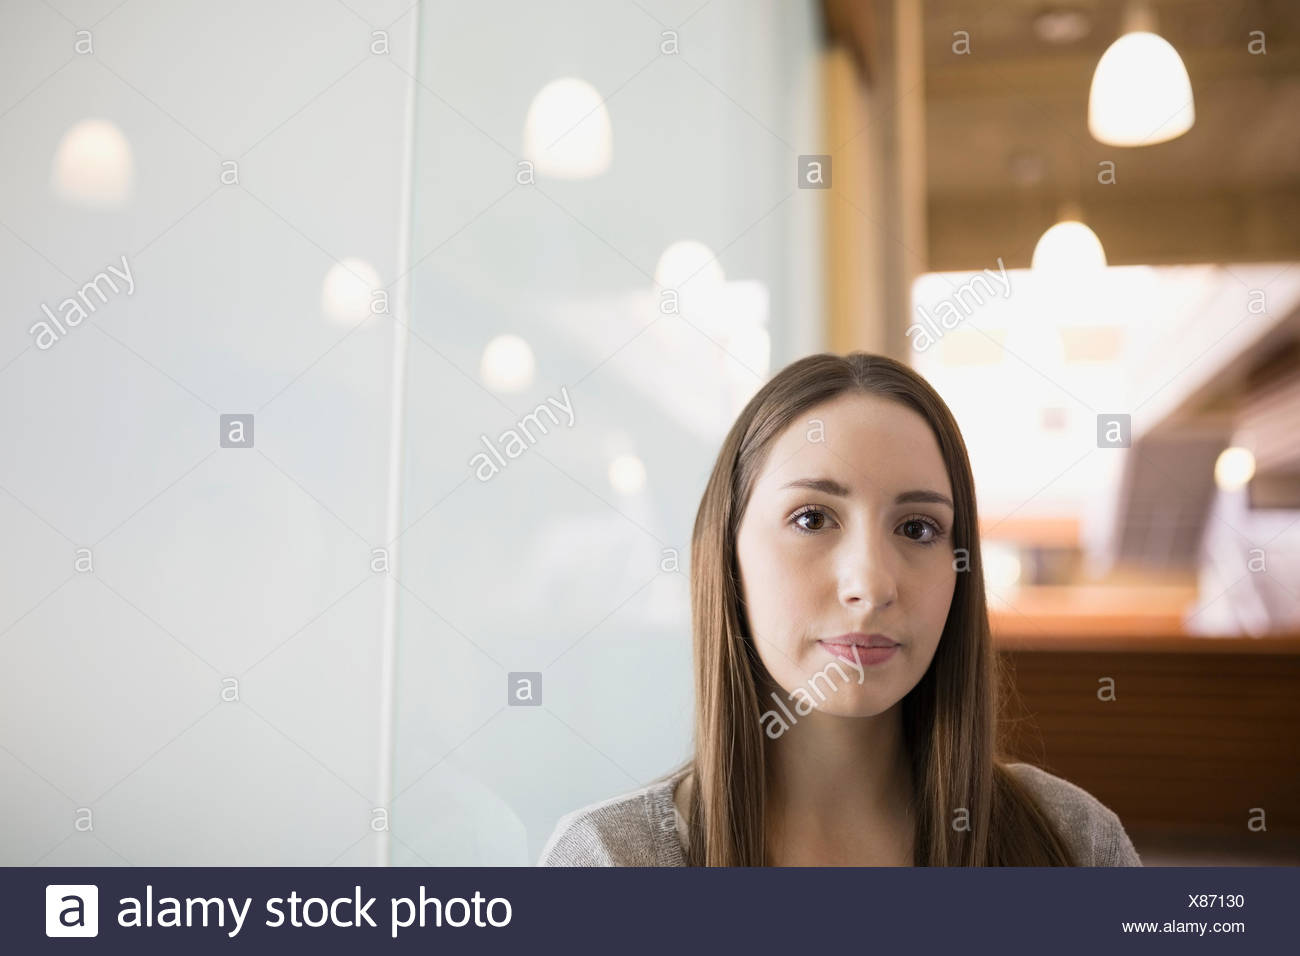 Portrait serious businesswoman leaning on frosted glass - Stock Image